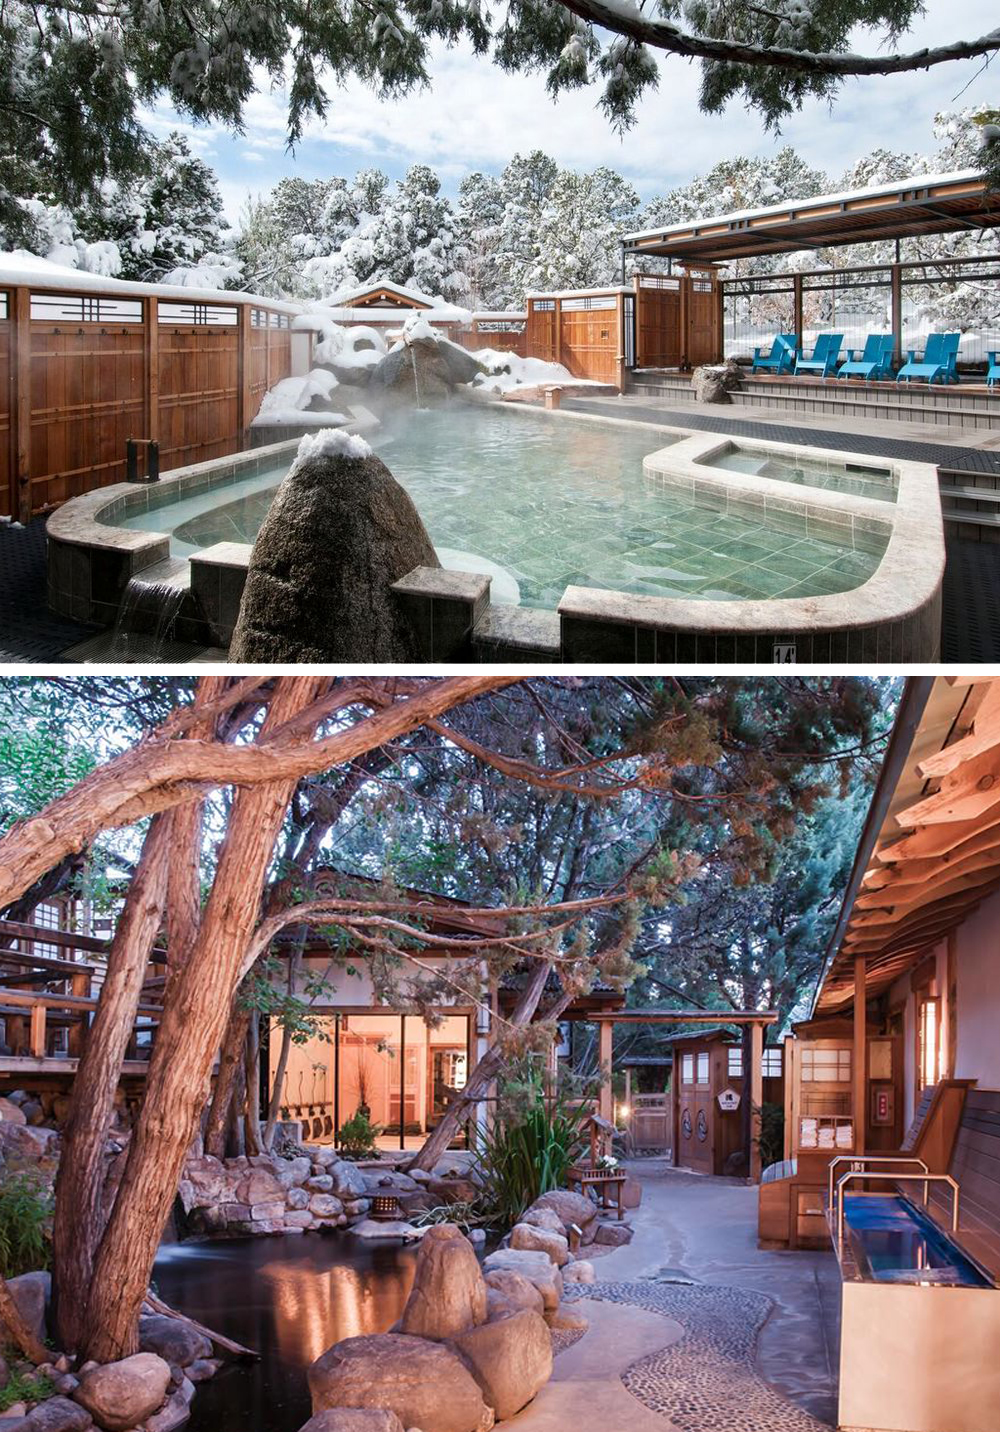 Ten Thousand Waves - Among piñons and junipers are beautiful outdoor hot tubs and spa suites, world-class bodywork & skin care, and the amazing Izanami restaurant